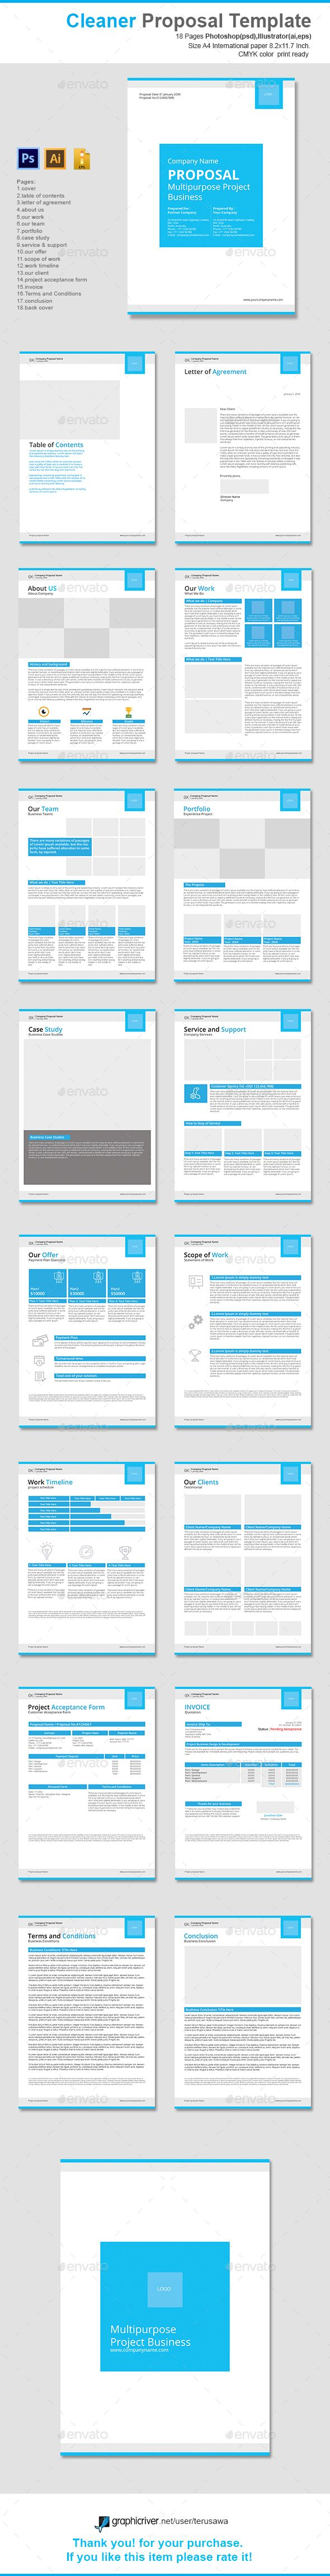 Cleaner Proposal Template. Download here: http://graphicriver.net/item/cleaner-proposal-template/16037208?ref=ksioks